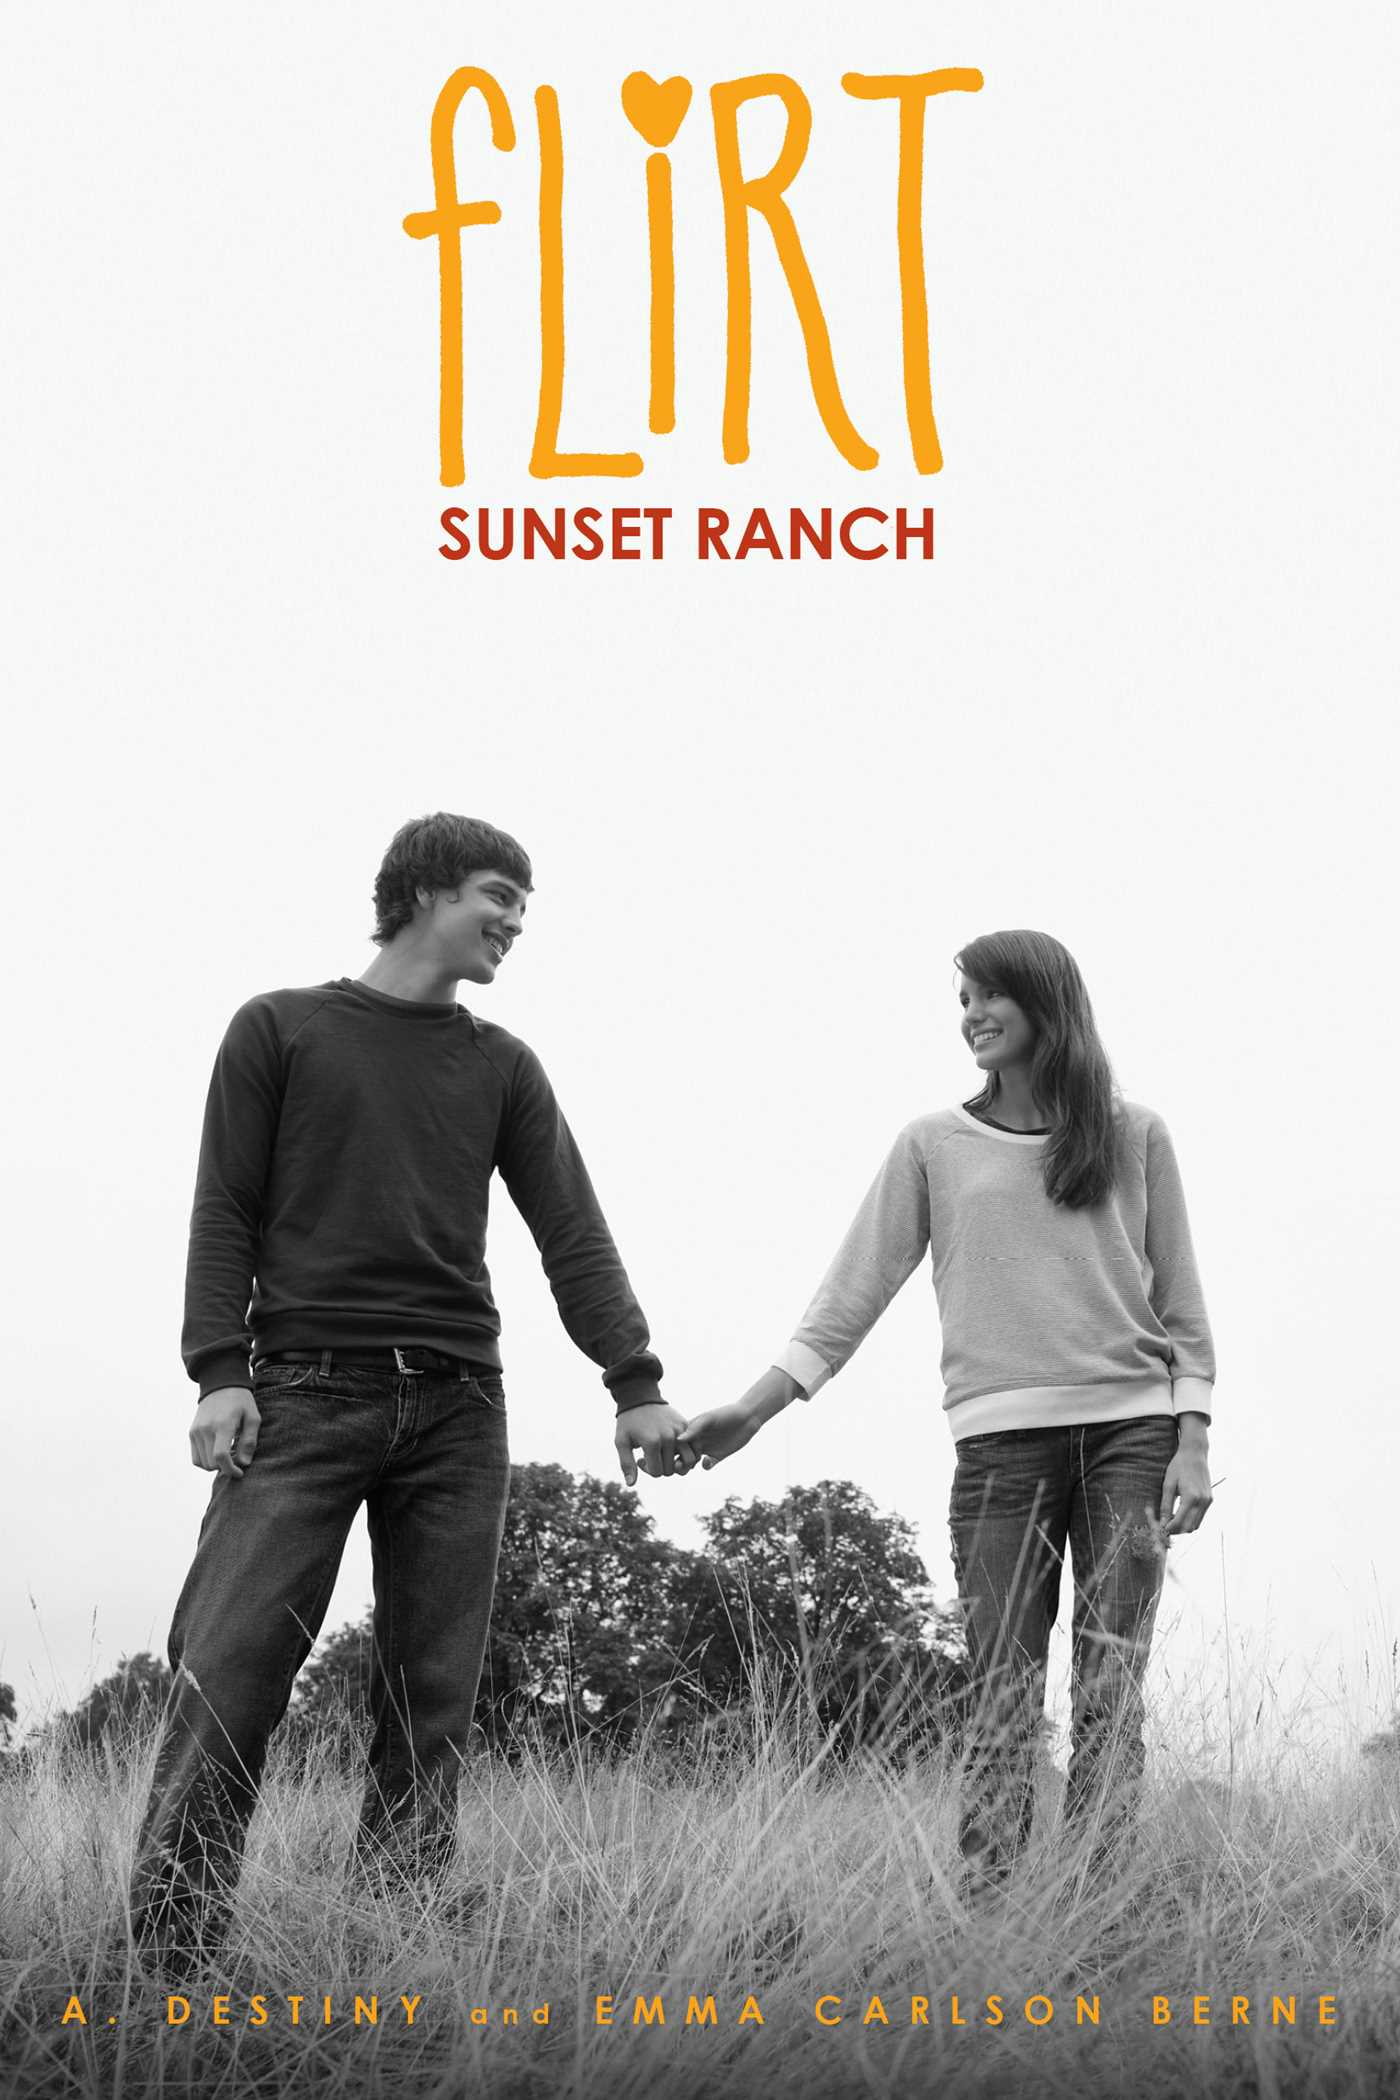 Sunset-ranch-9781442484092_hr